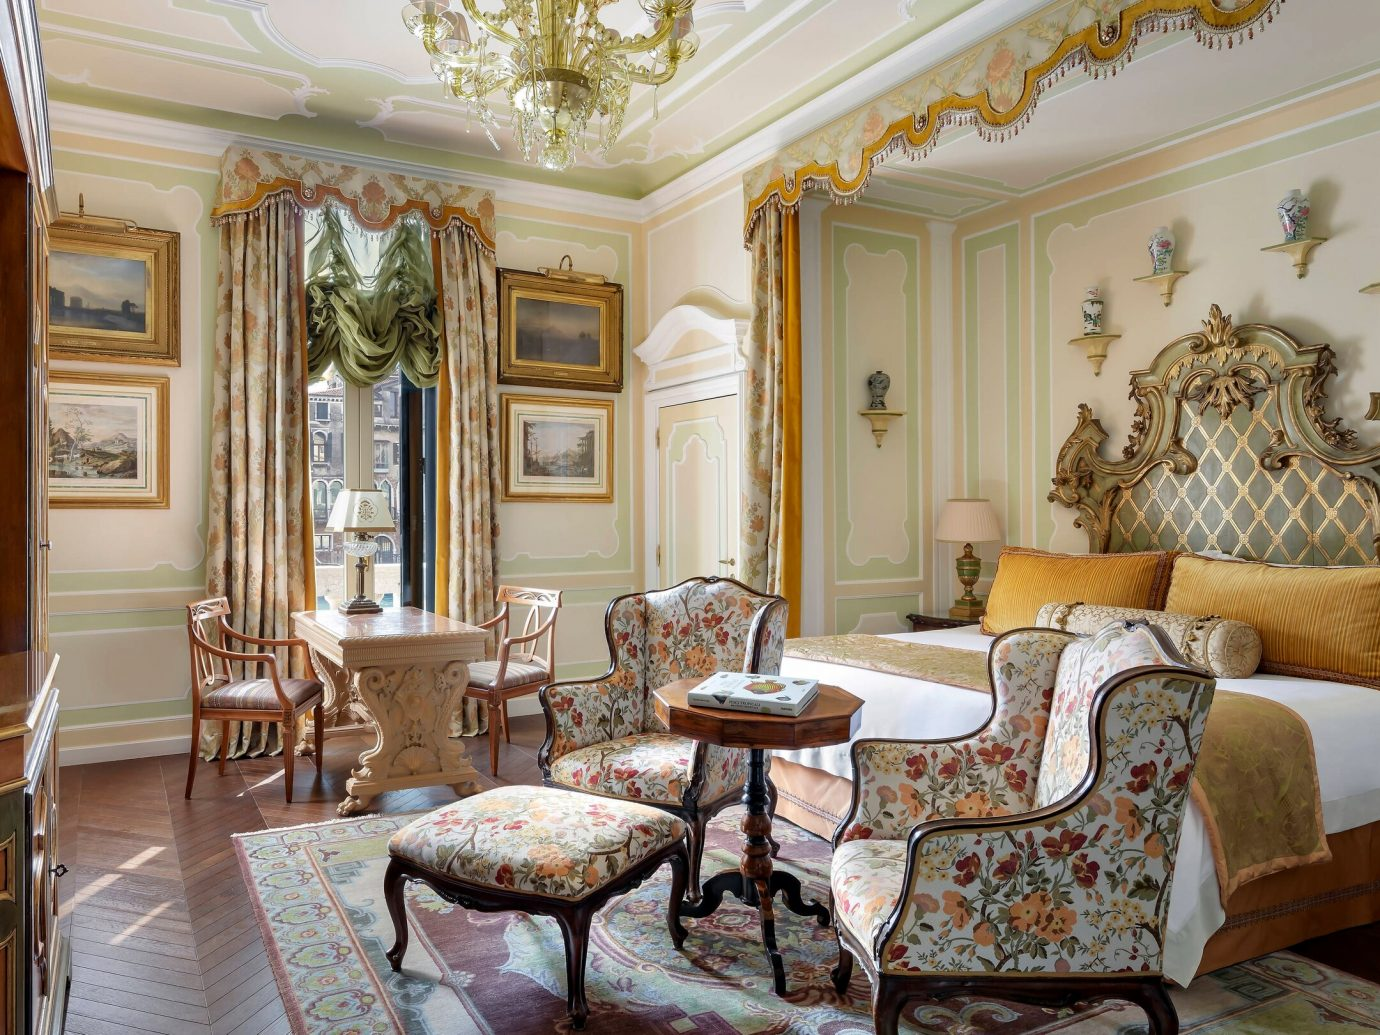 Presidential suite at Gritti Palace, Venice